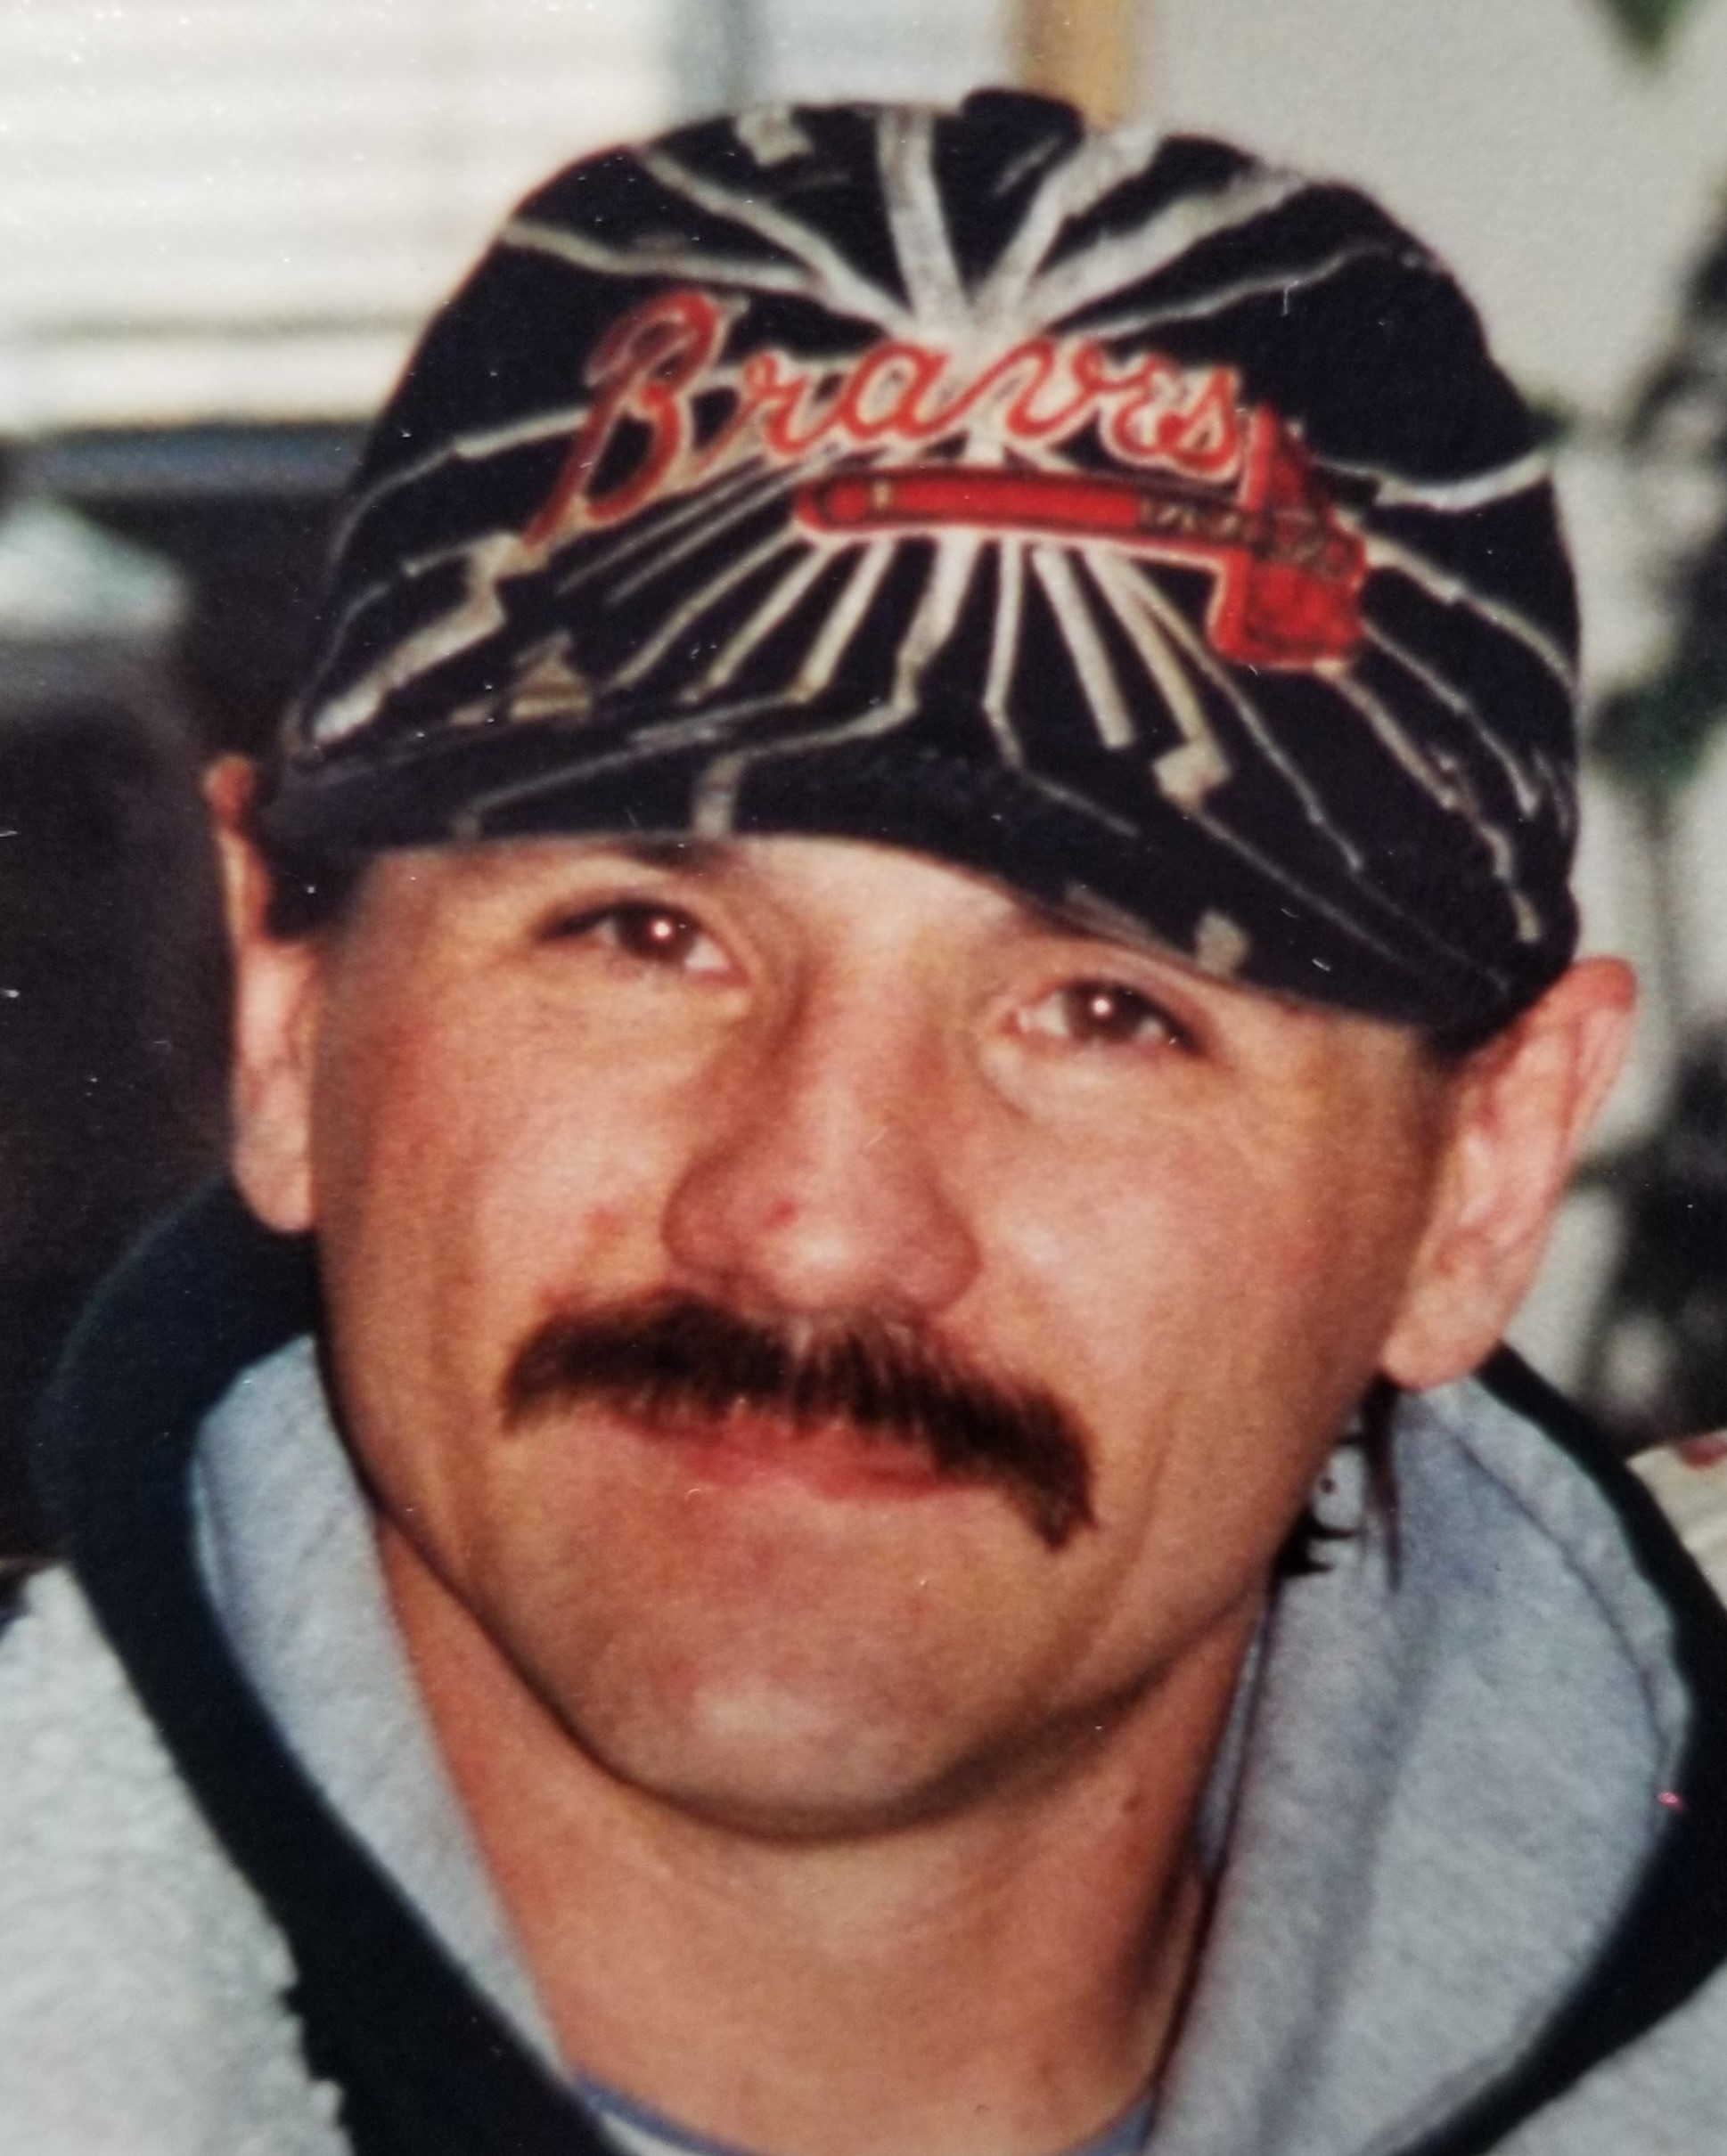 Johnny Dishman, 58, of North Platte, Nebraska